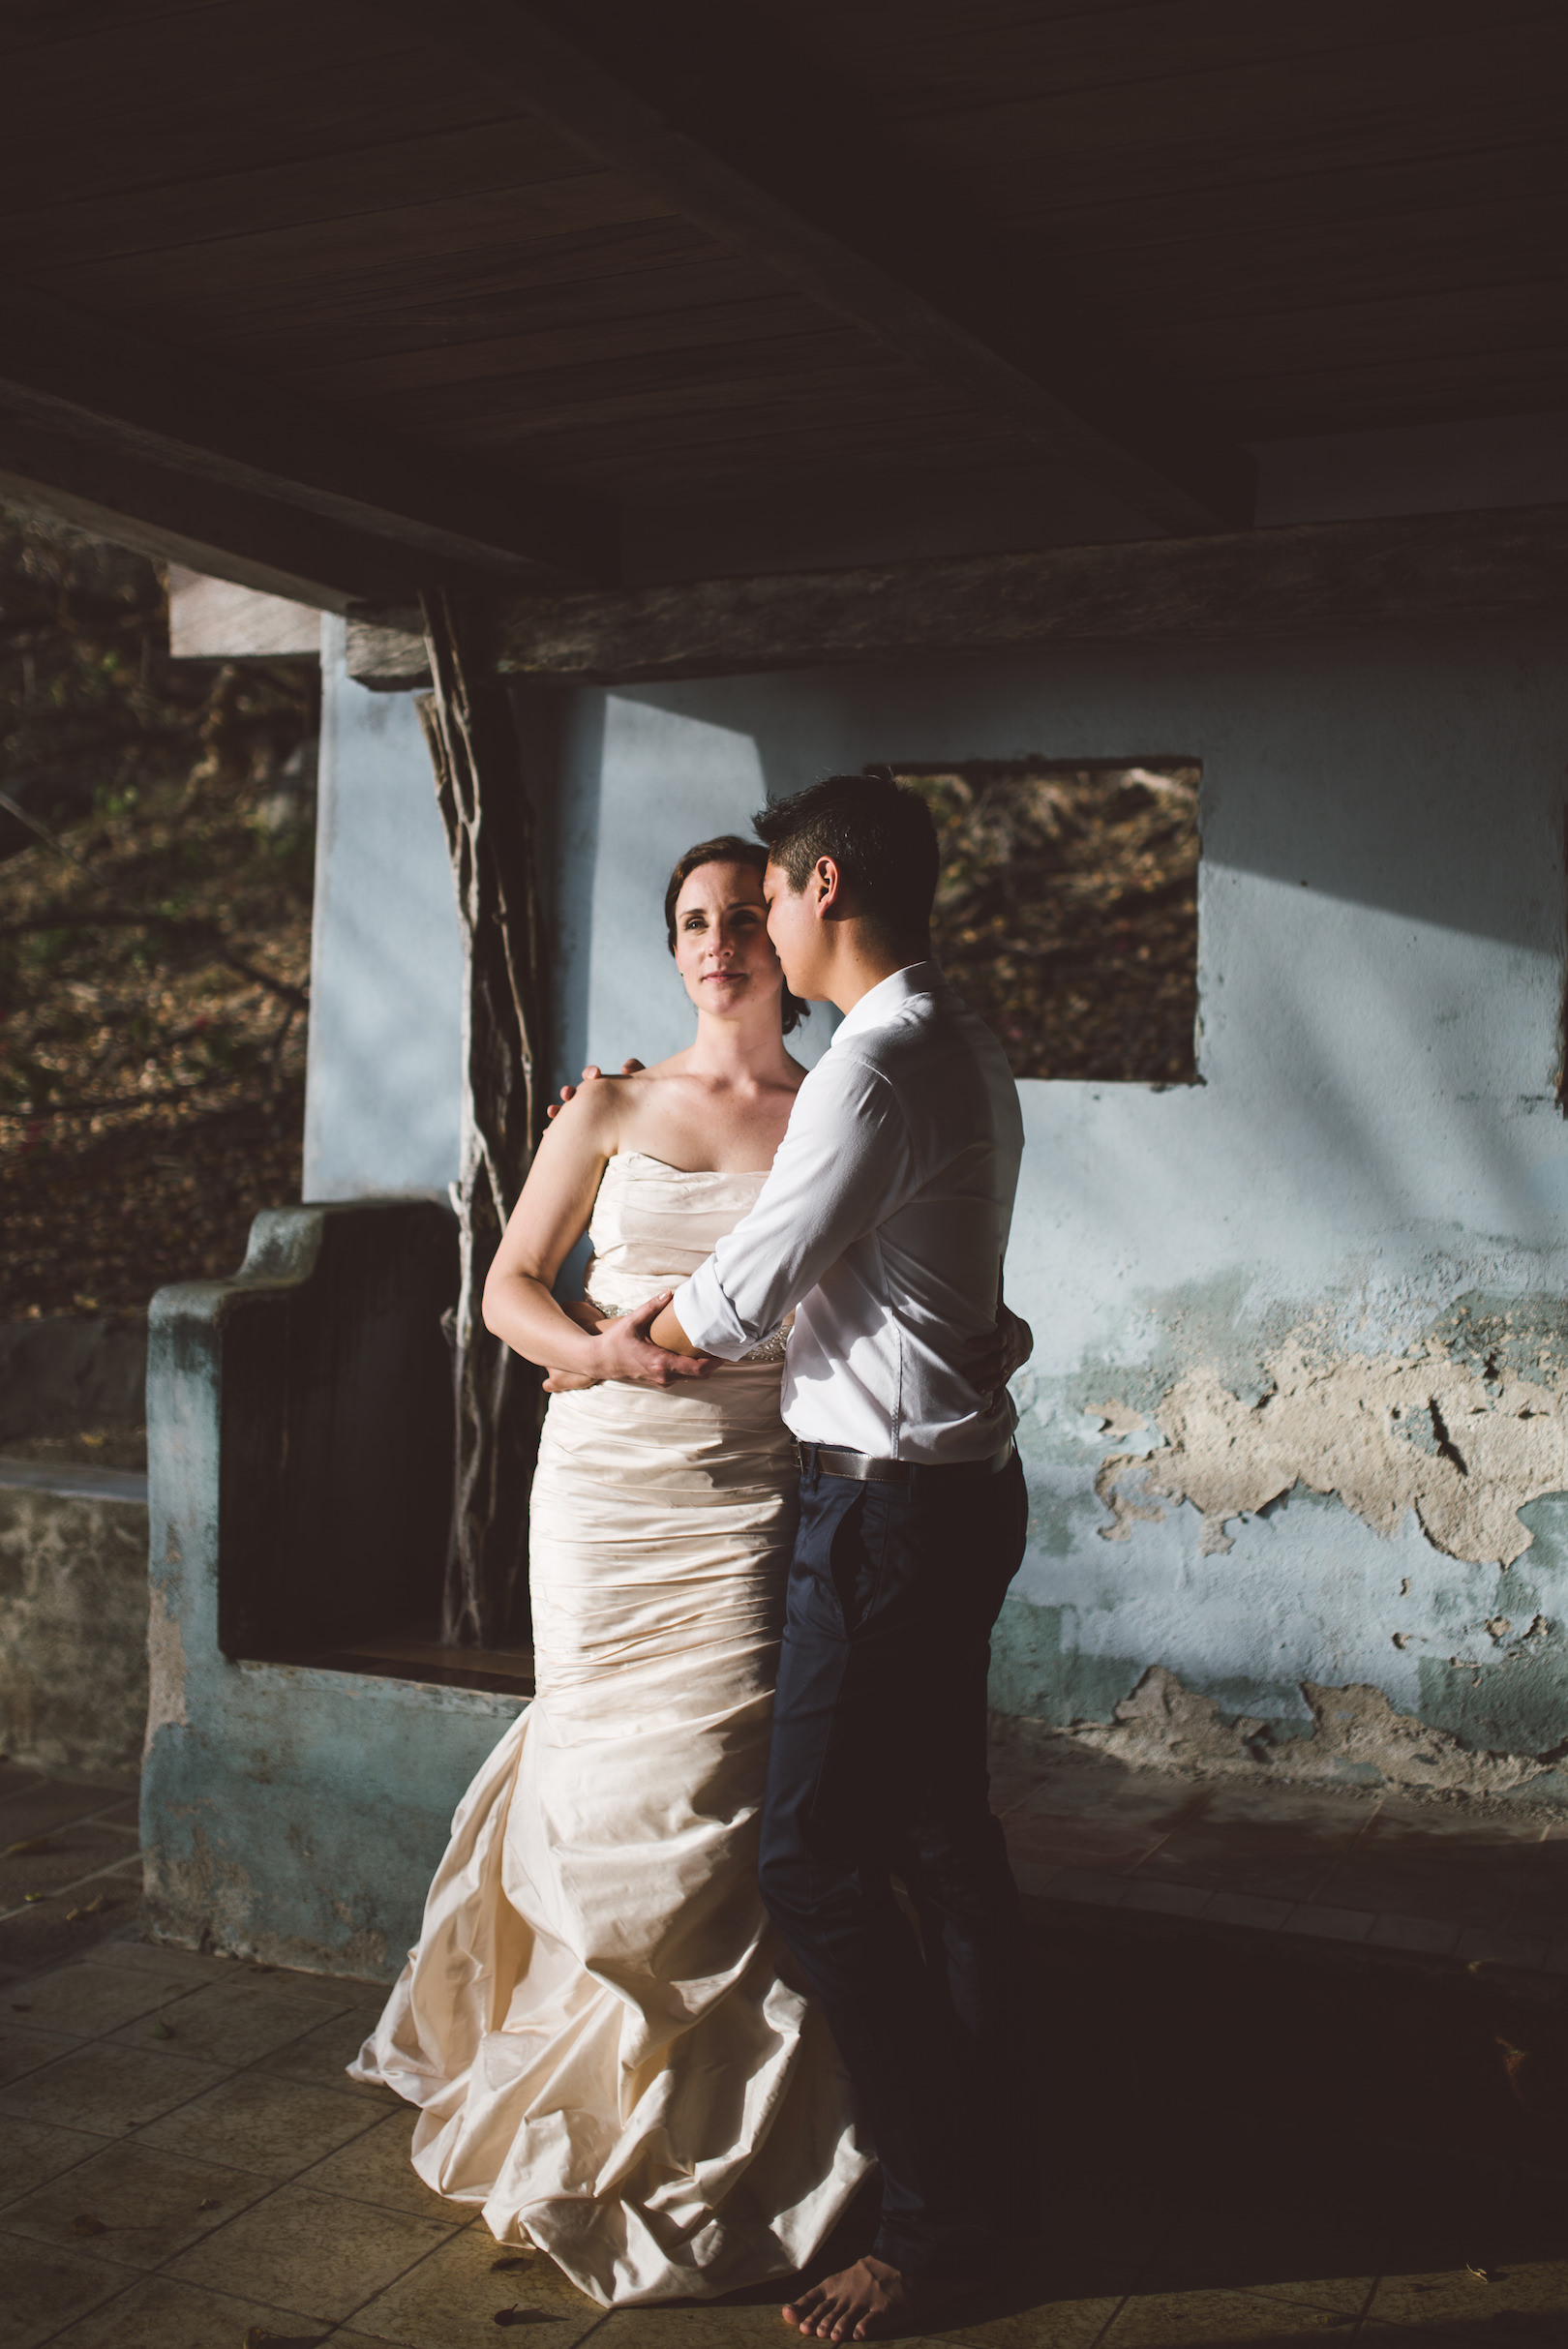 Steve & Mika - Sayulita - © Dallas Kolotylo Photography - 780